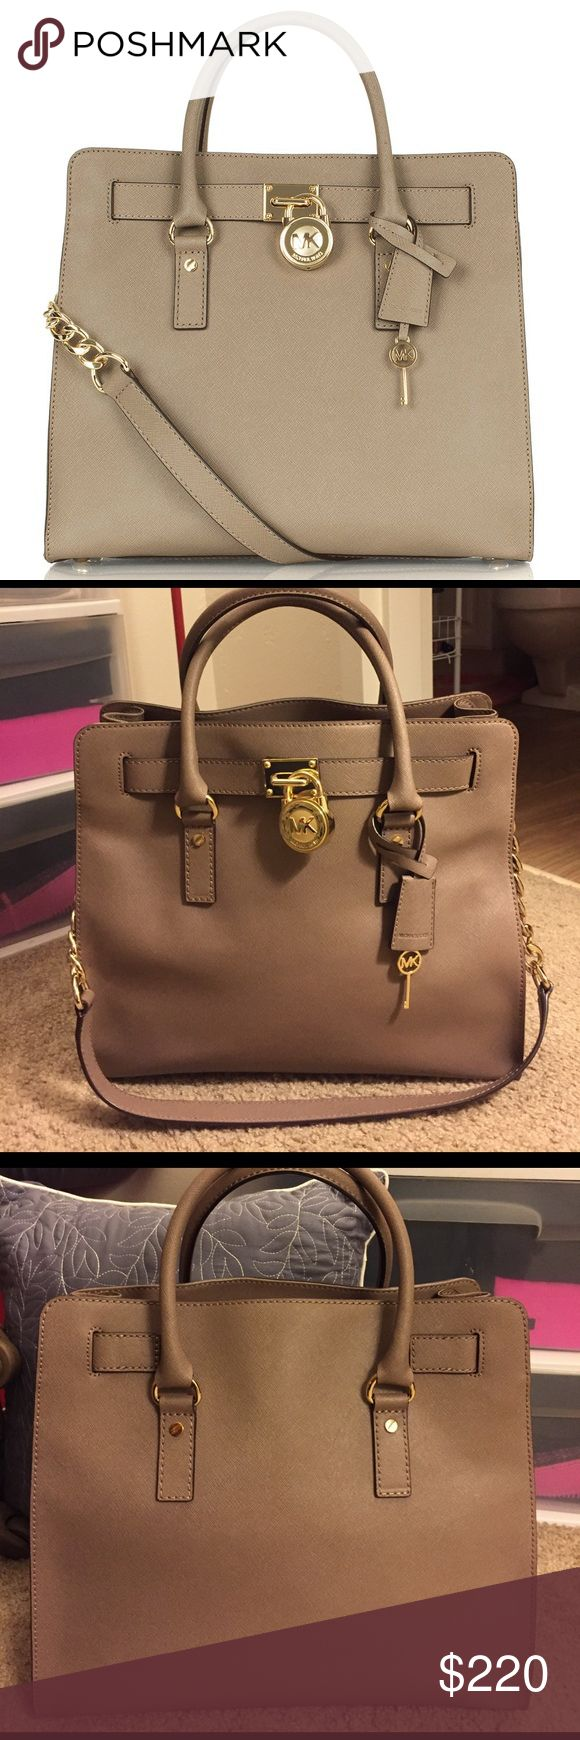 Michael Kors Hamilton bag 100% authentic MK Hamilton tote bag. Taupe color with gold lock and chain. Perfect condition!!! No markings, rips, or tears. Only selling because I have so many purses! Comes with the original satin bag for storage! Price is firm. Michael Kors Bags